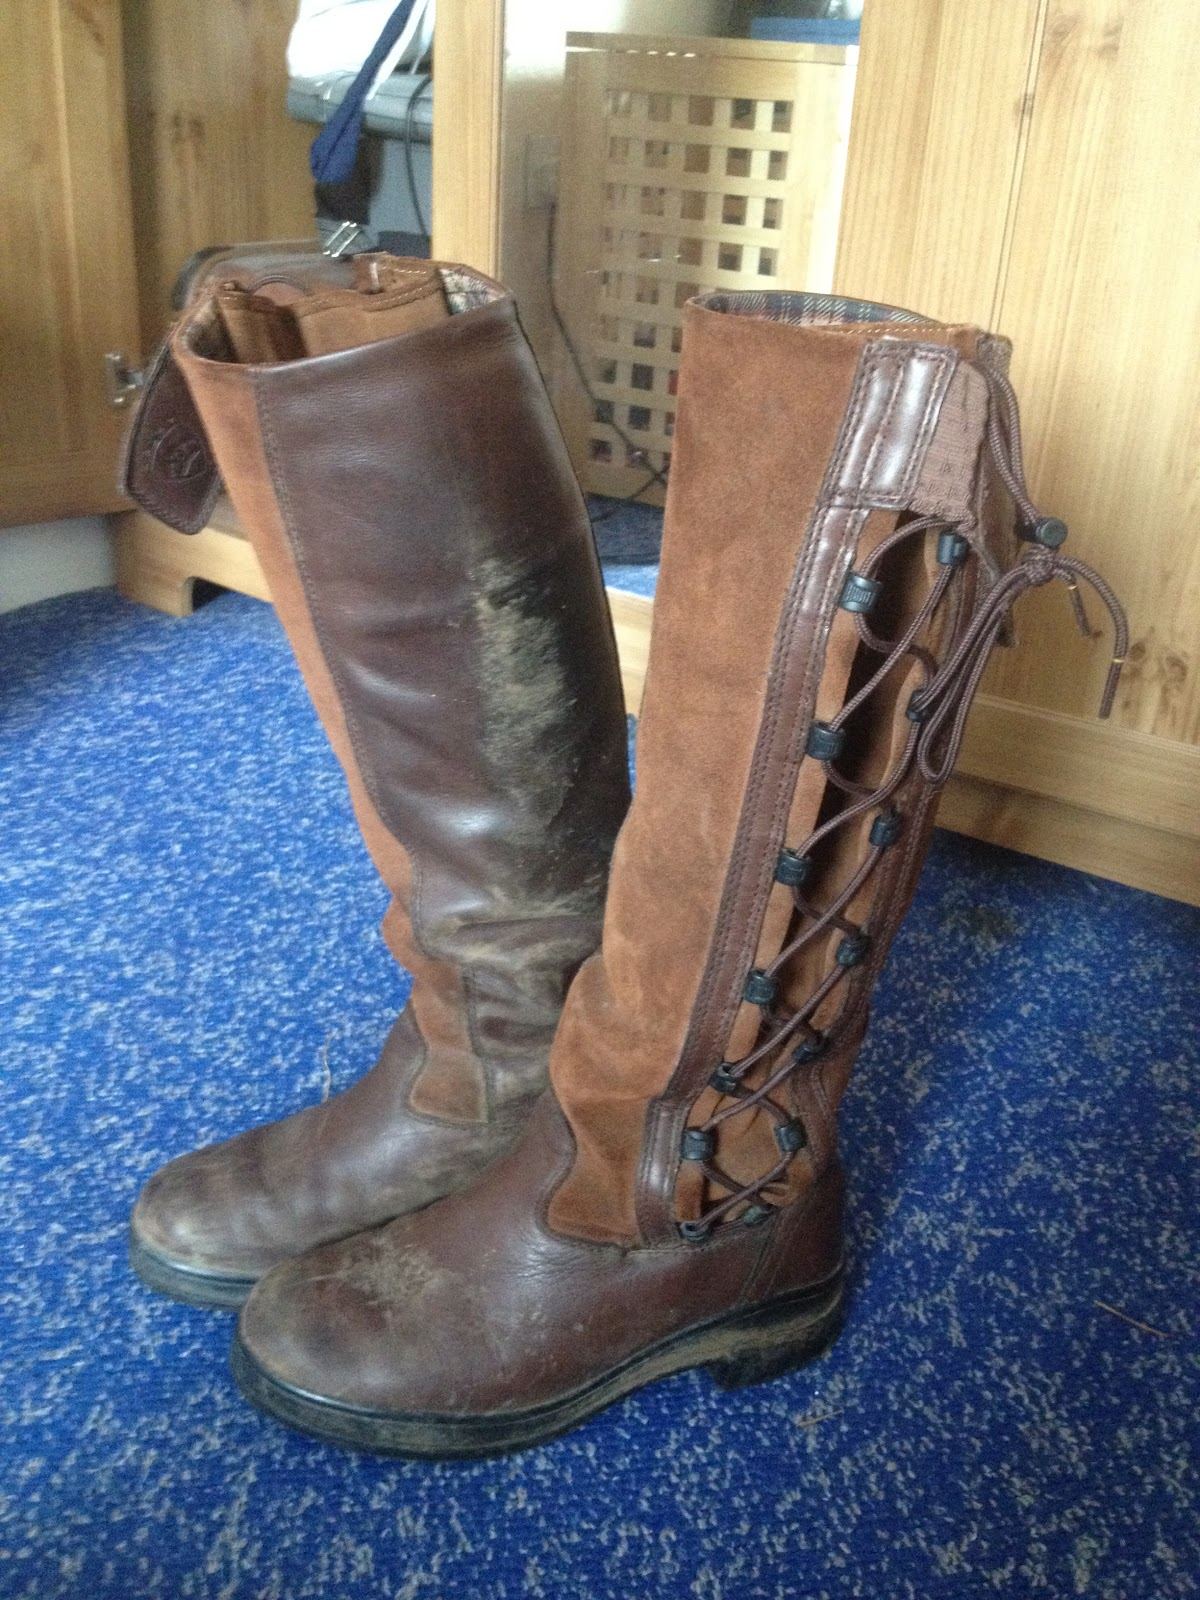 The Rider S Review Ariat Grasmere Review